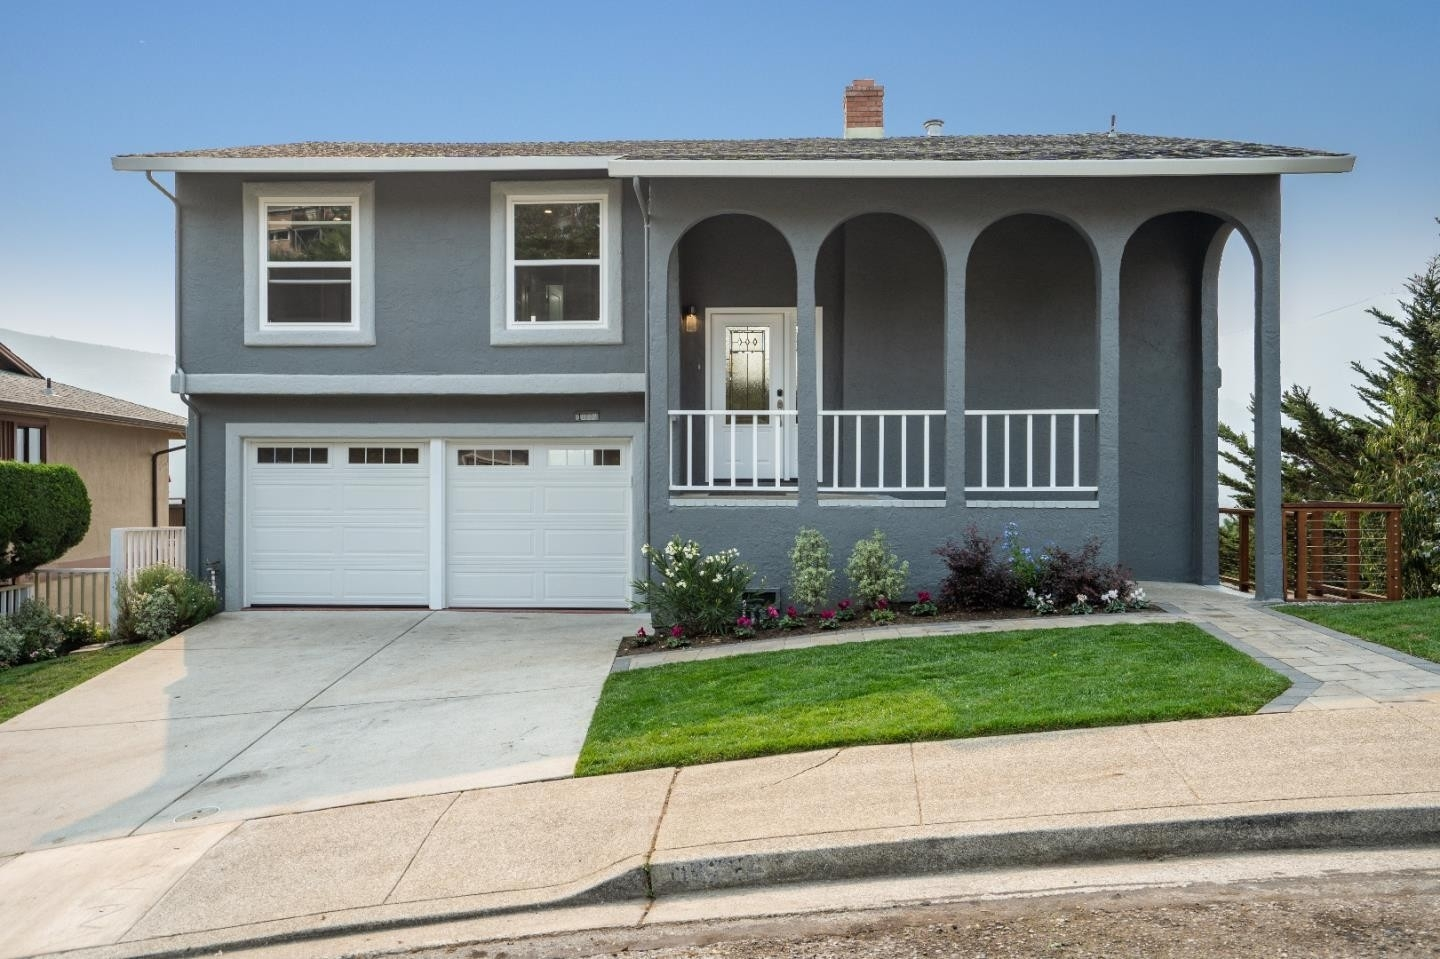 Property at Park Pacifica, Pacifica, CA 94044